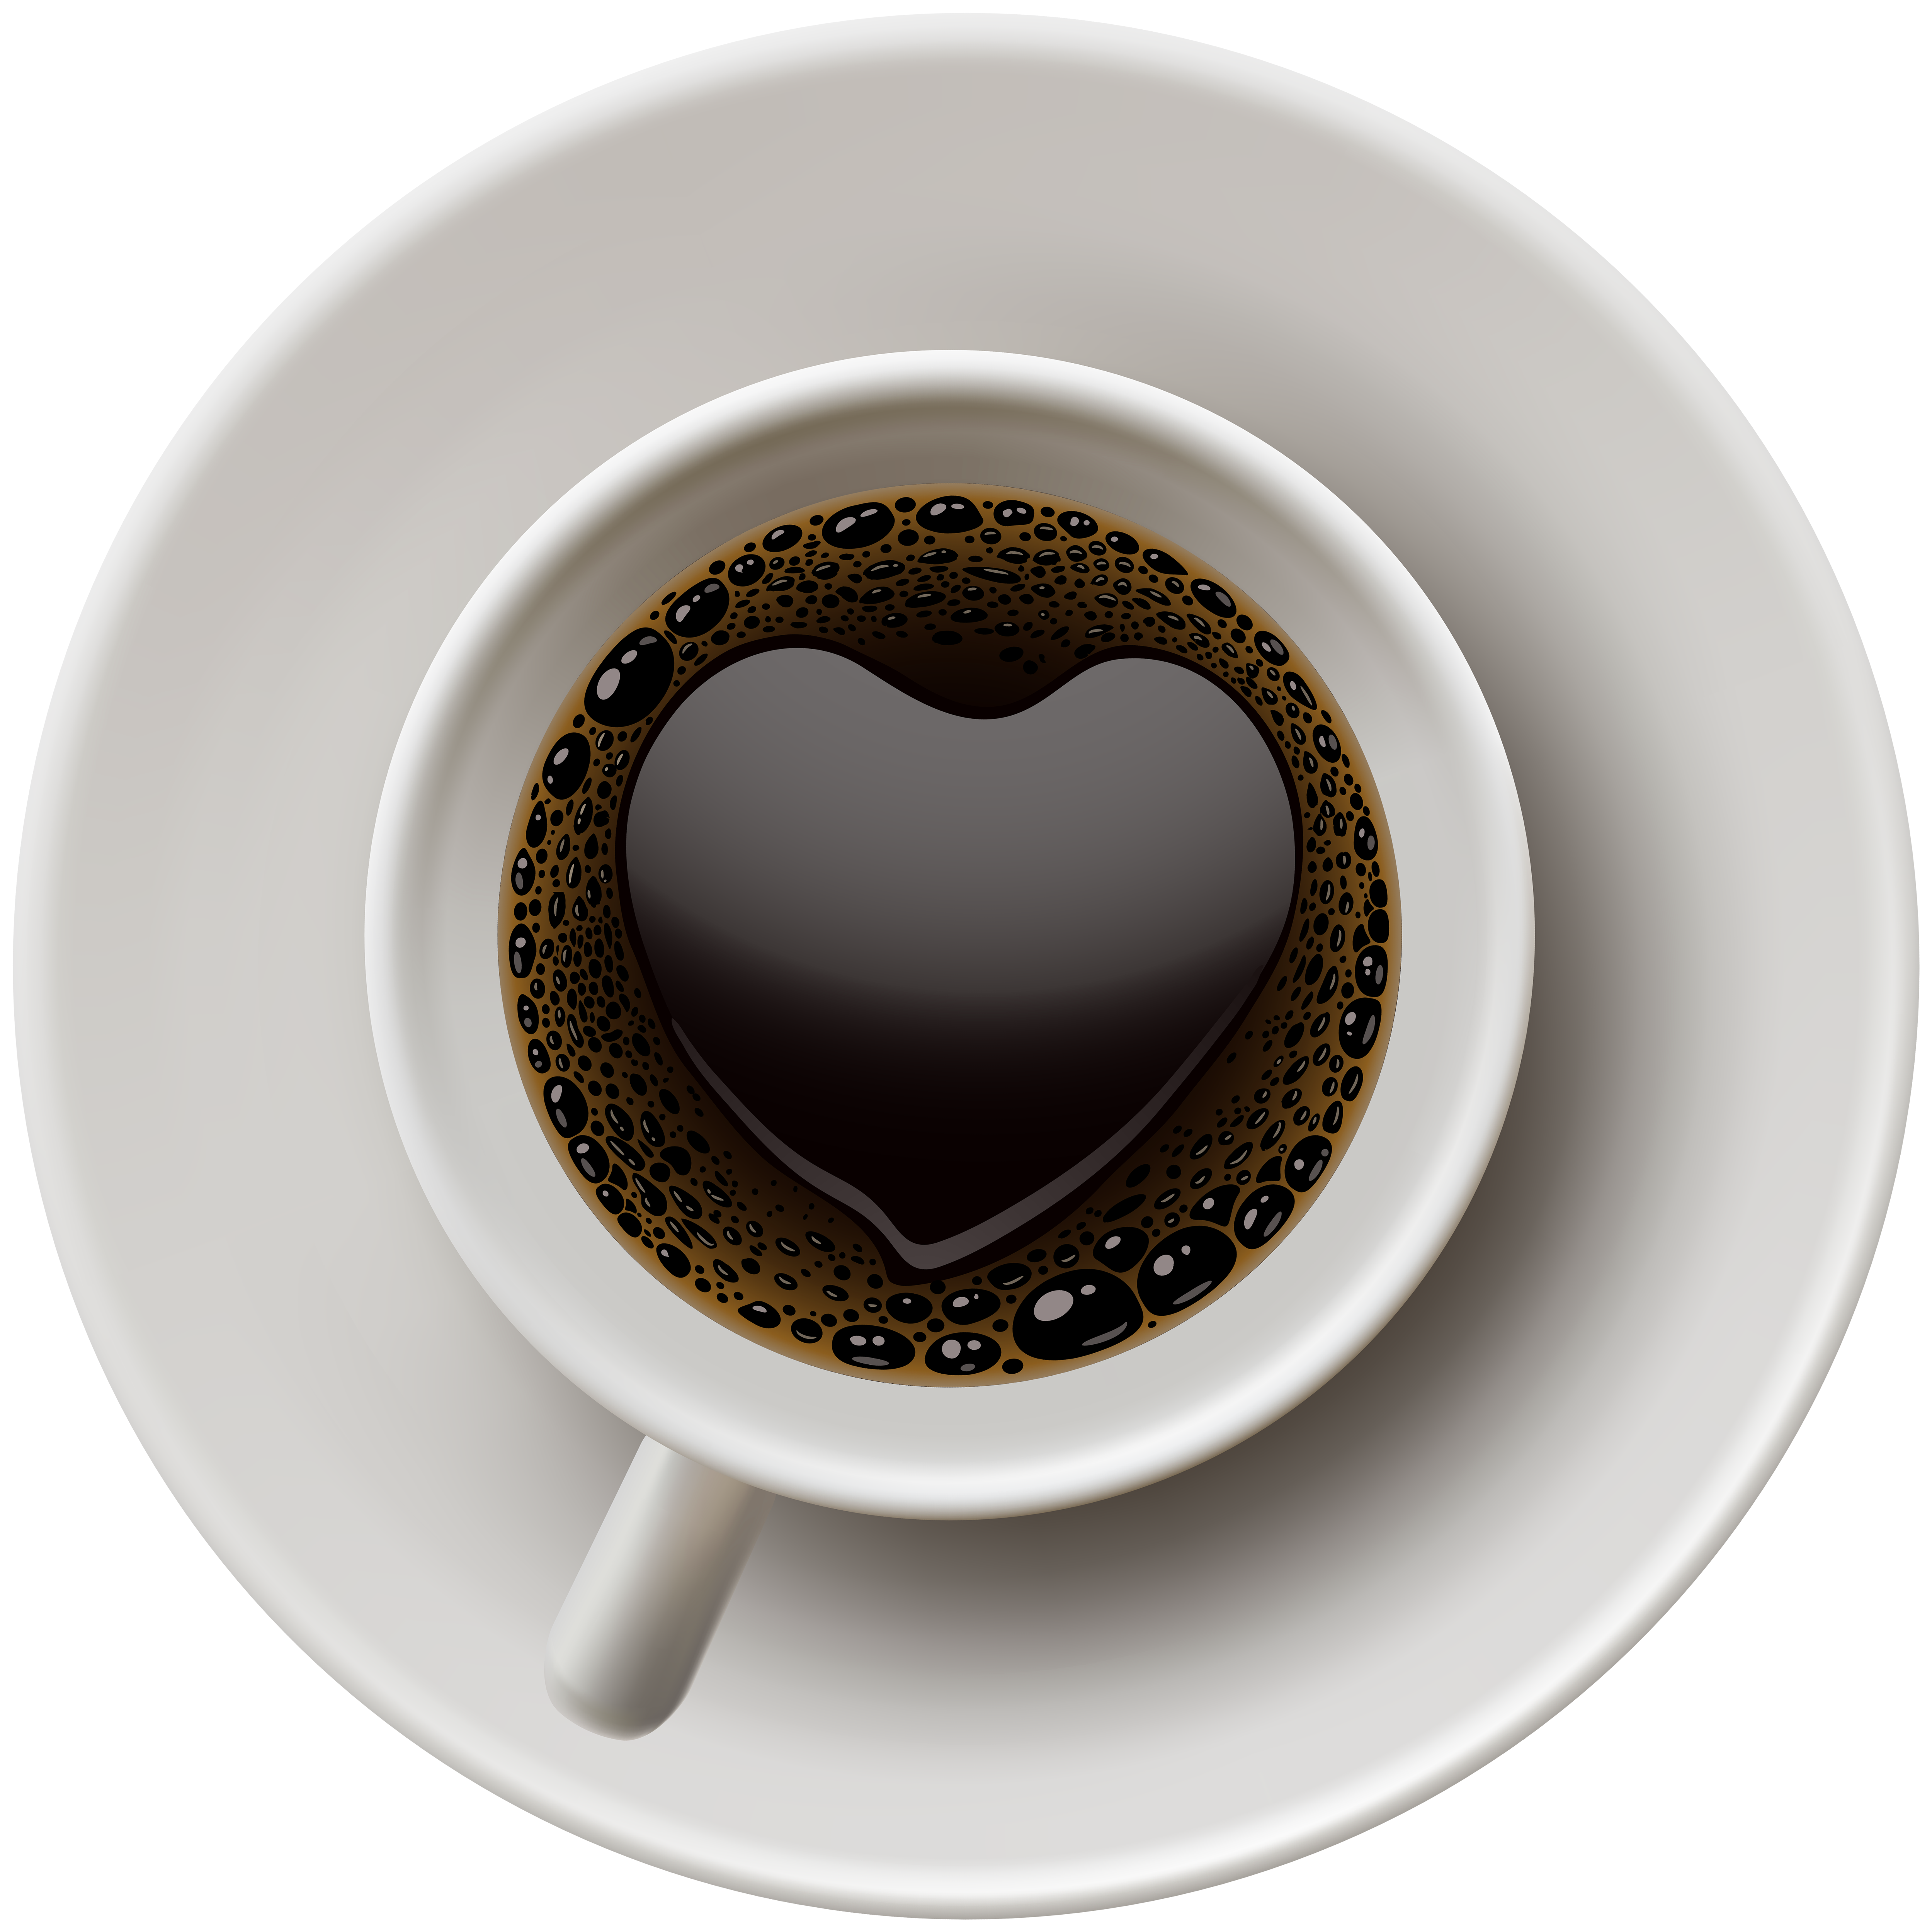 Coffee heart clipart image download Coffee with Heart PNG Clip Art | Gallery Yopriceville - High ... image download